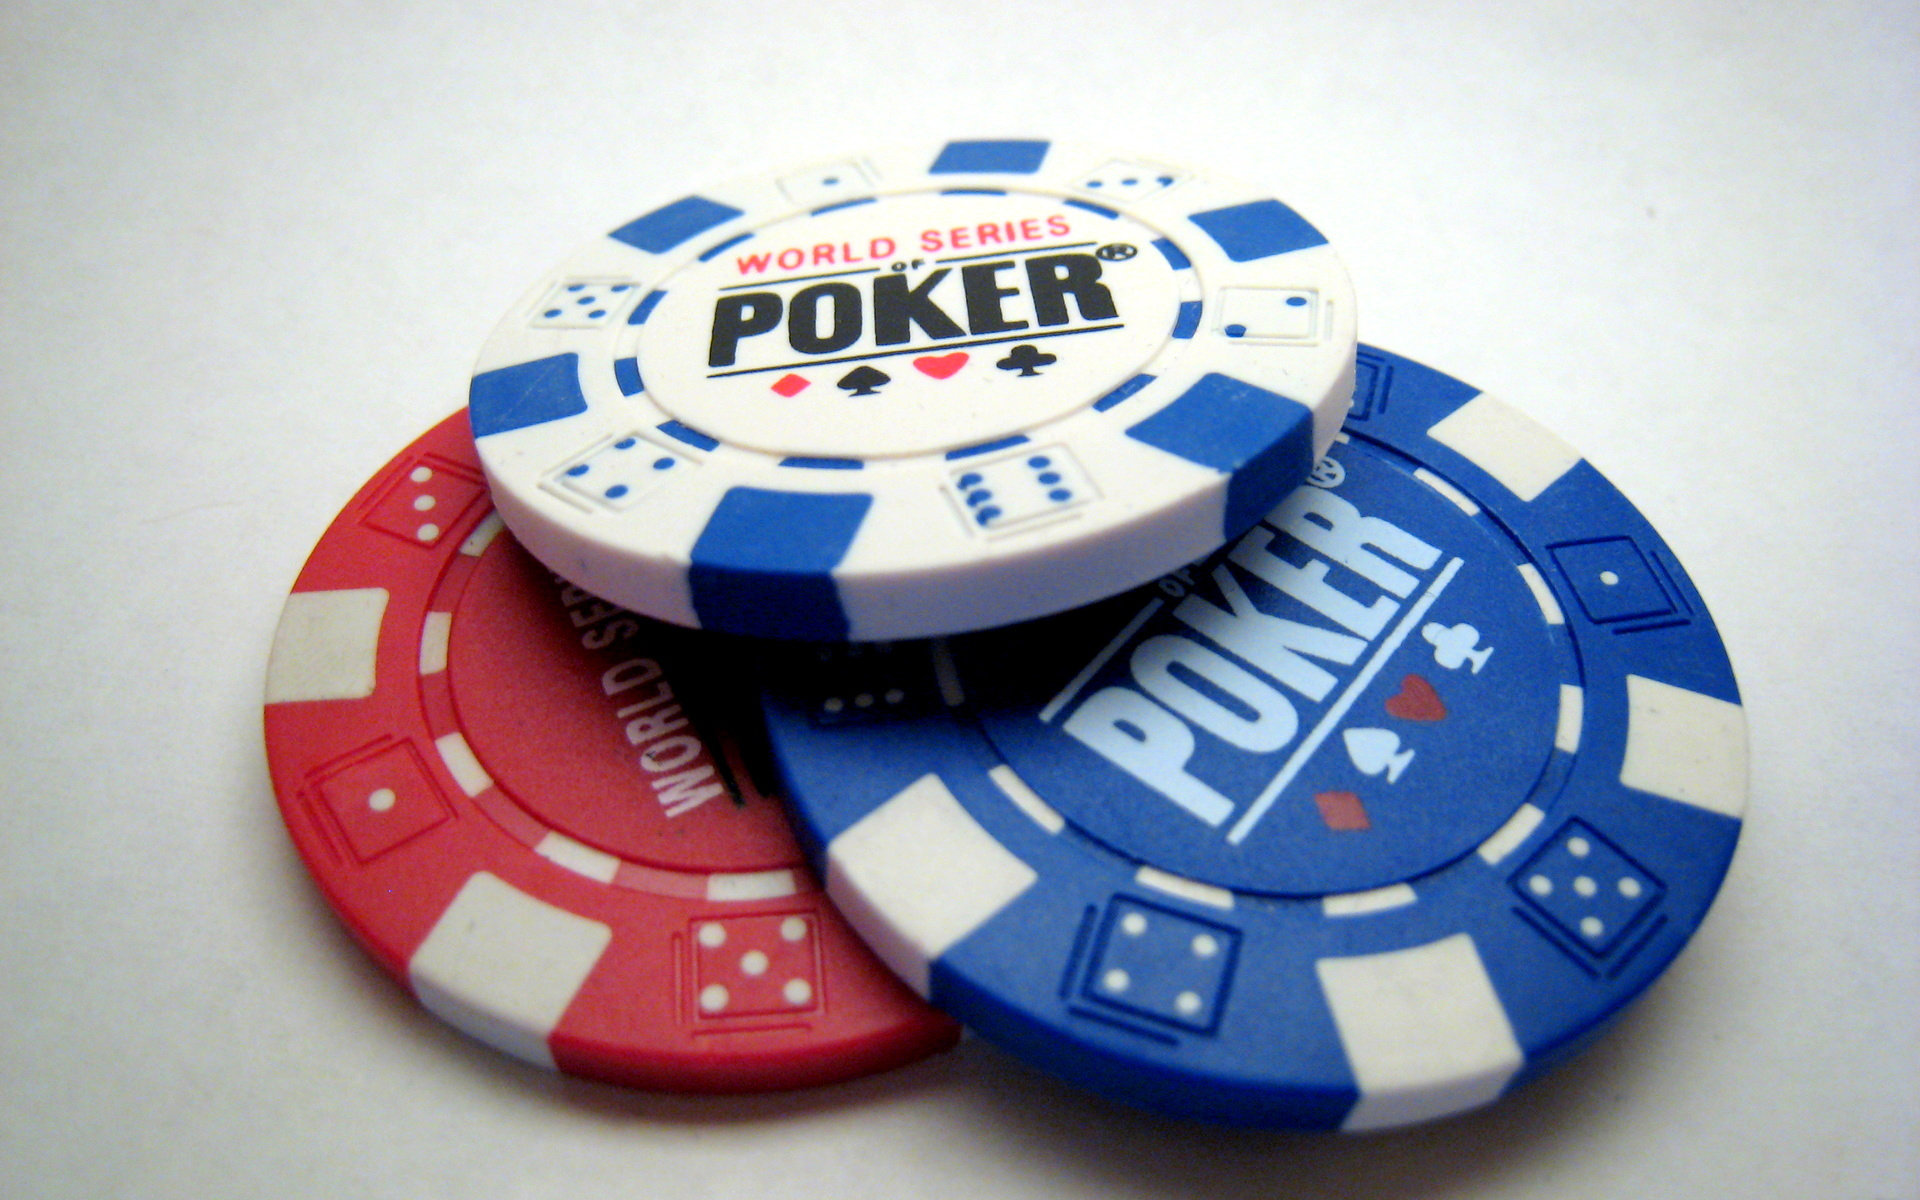 The Right Way To Change Into Better With Online Casino